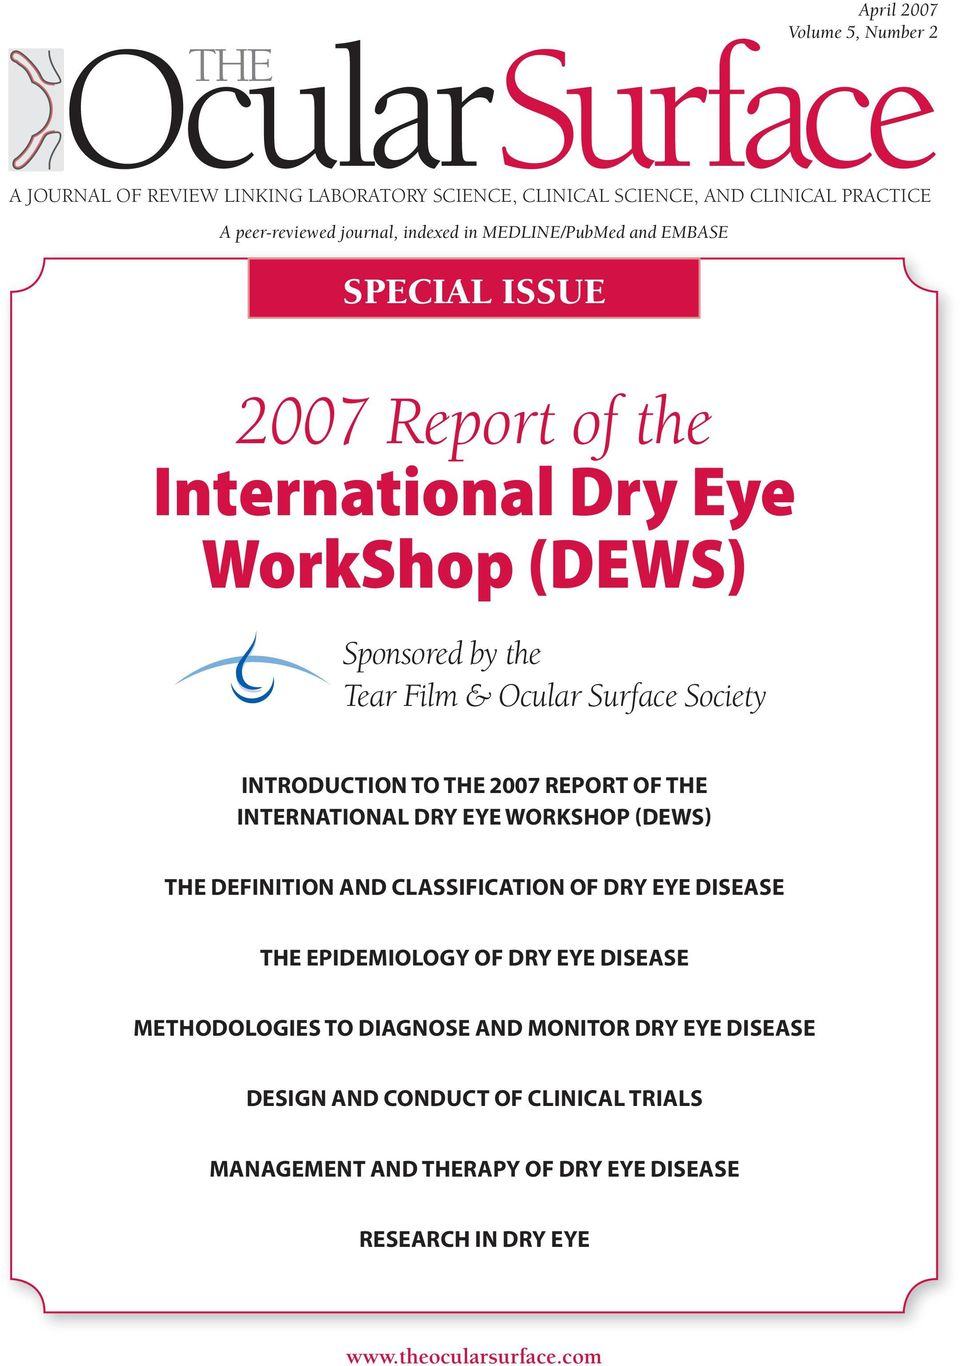 REPORT OF THE INTERNATIONAL DRY EYE WORKSHOP (DEWS) THE DEFINITION AND CLASSIFICATION OF DRY EYE DISEASE THE EPIDEMIOLOGY OF DRY EYE DISEASE METHODOLOGIES TO DIAGNOSE AND MONITOR